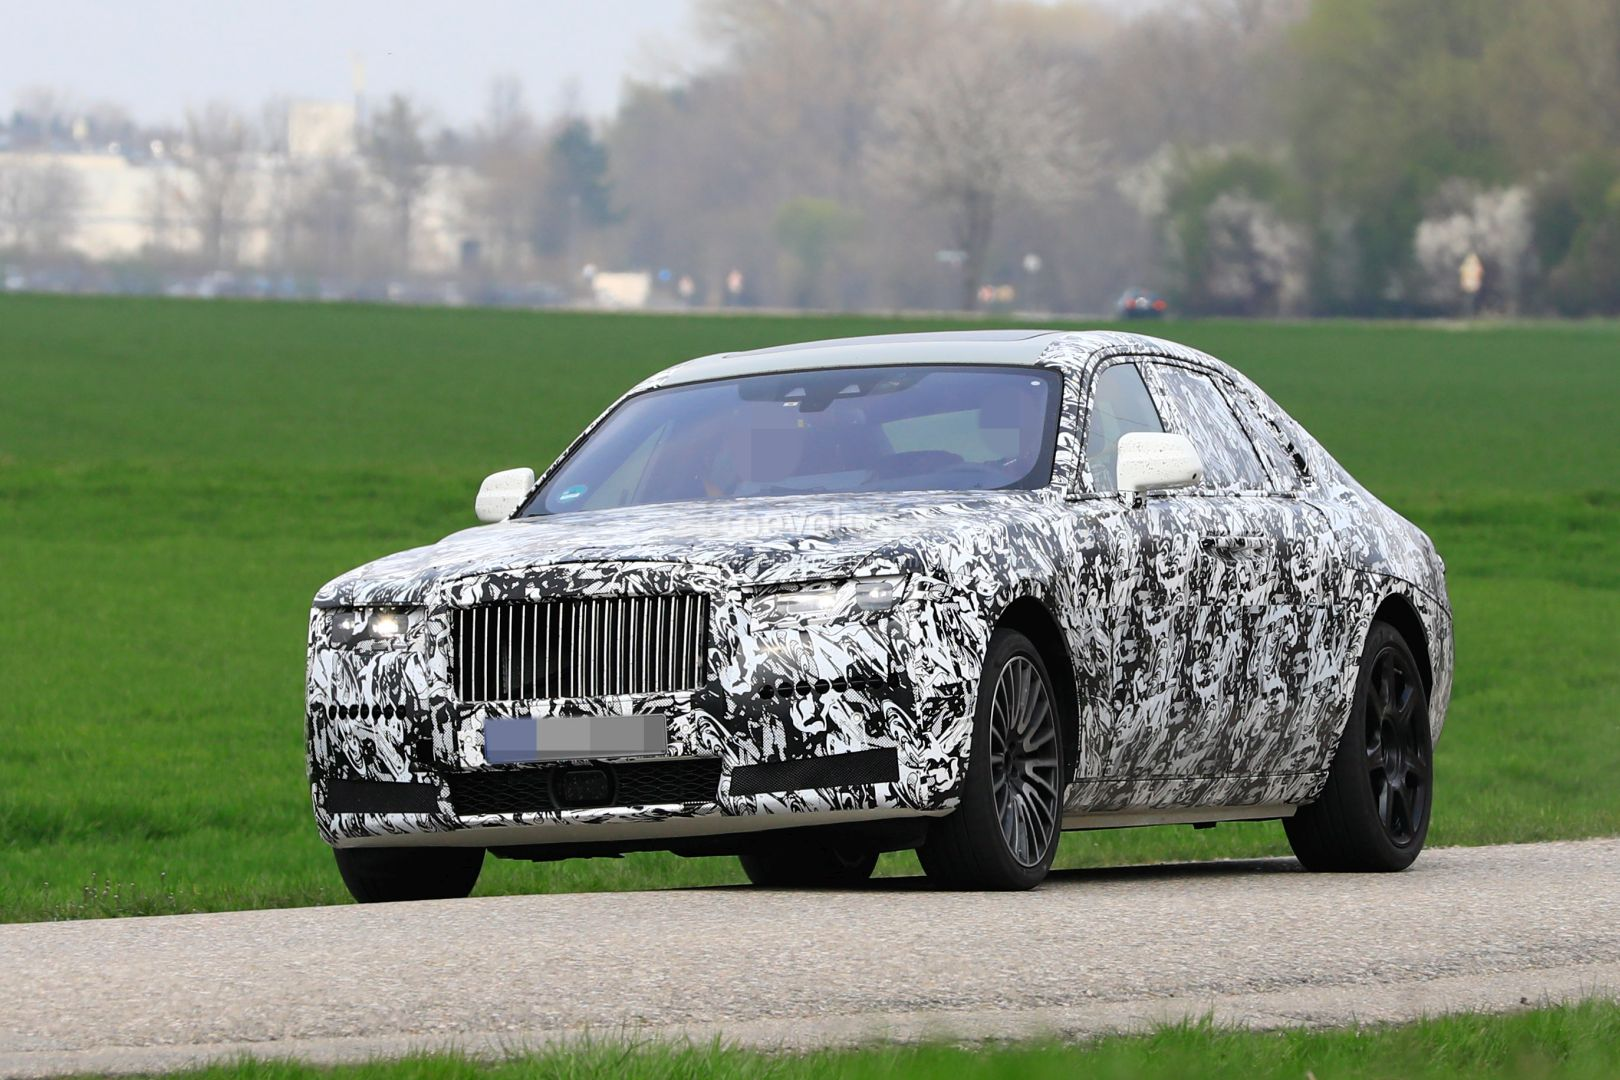 2021 Rolls Royce Ghost Prototype Spotted On The Road